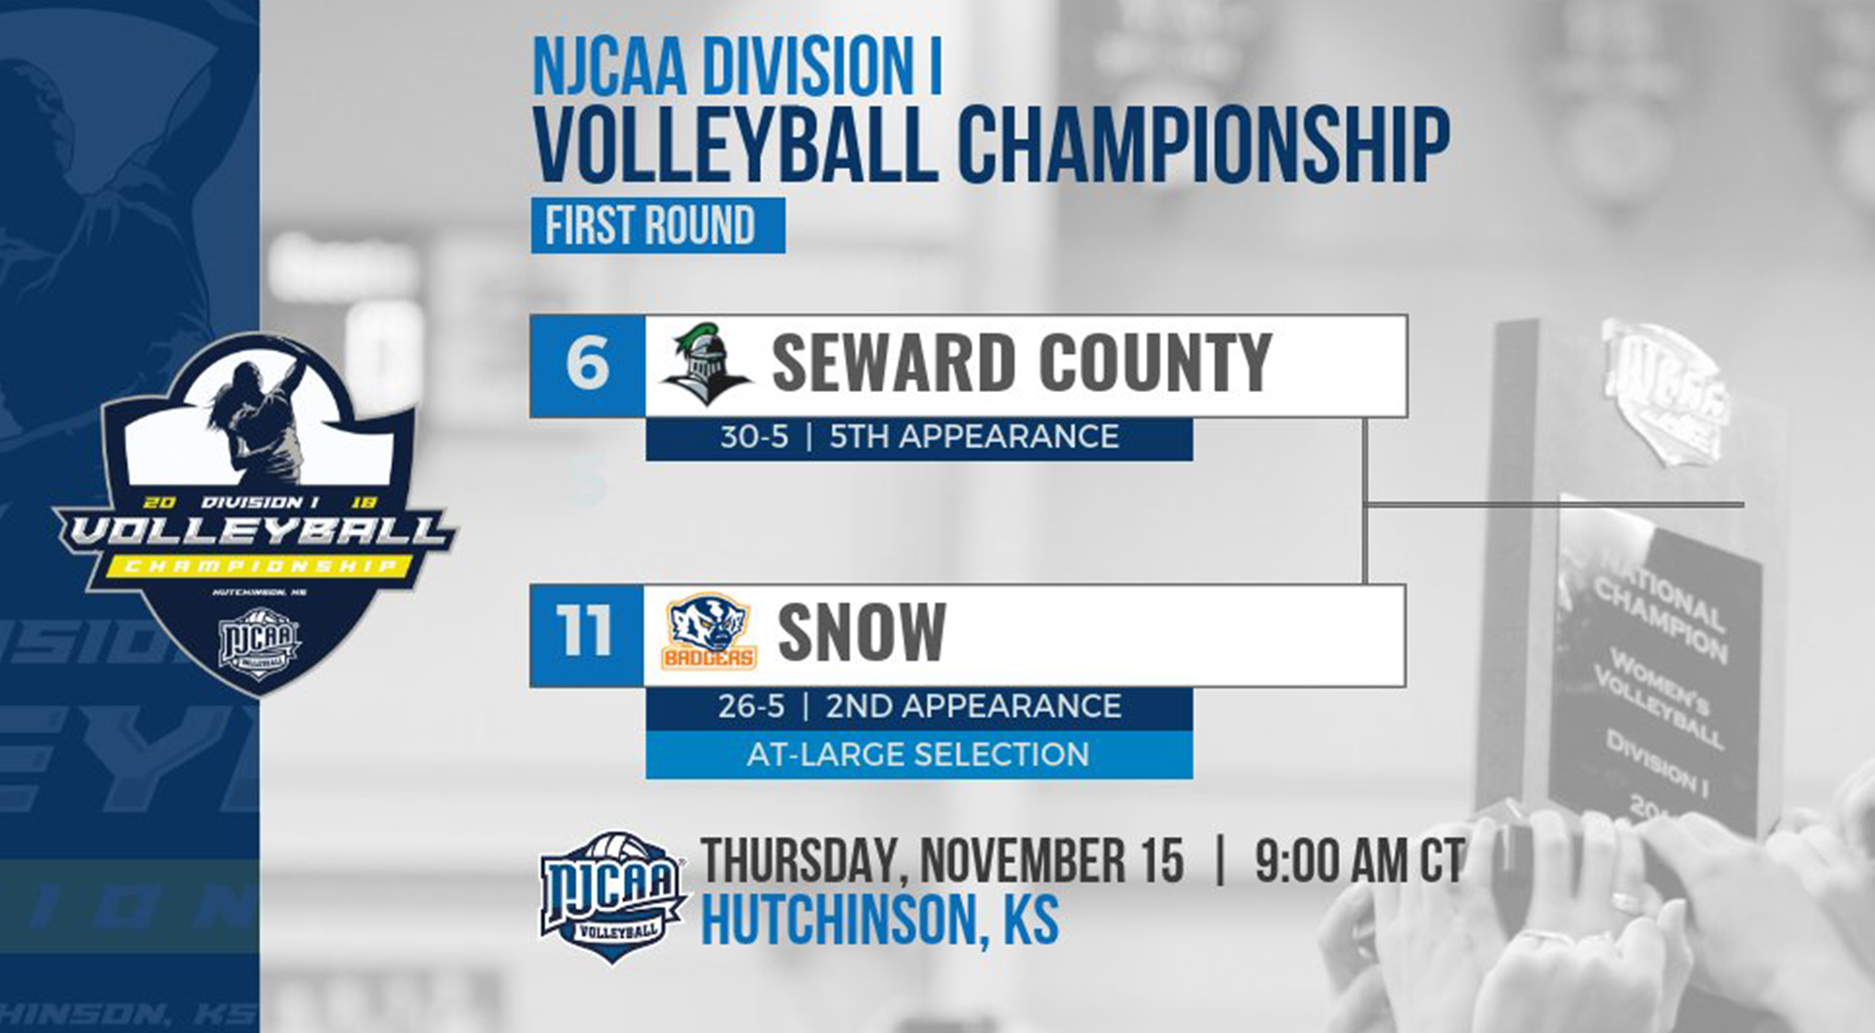 Seward Draws No. 6 Seed, Will Take on Snow in Opening Round